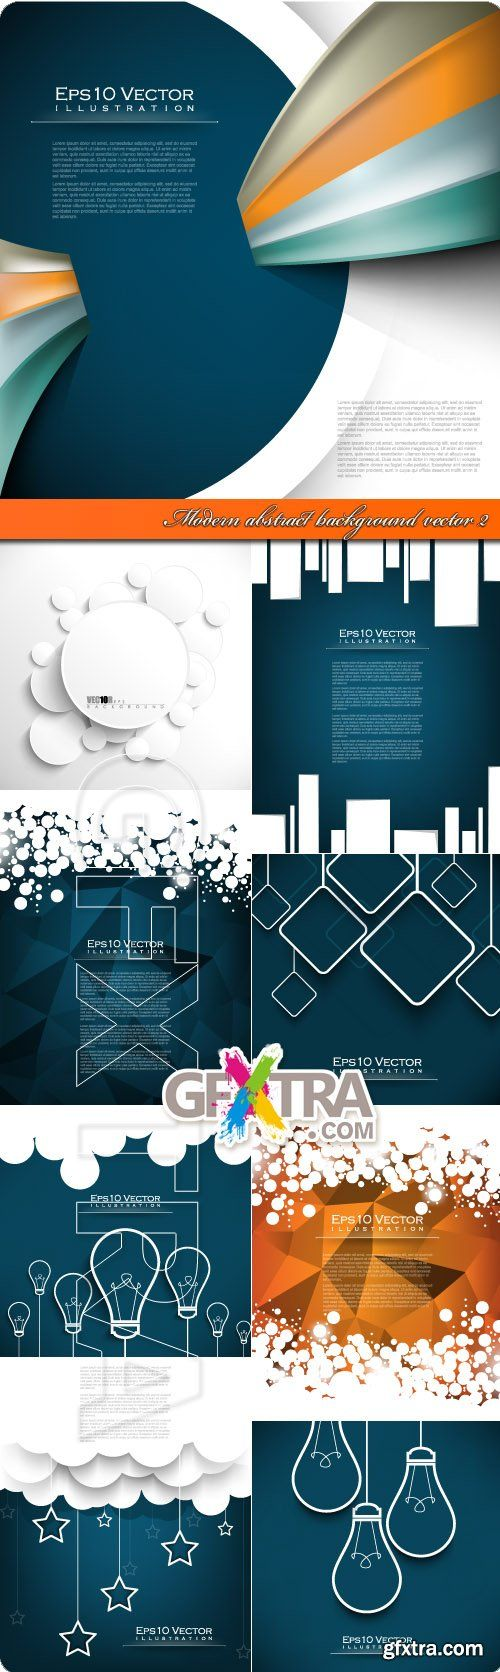 Modern abstract background vector 2